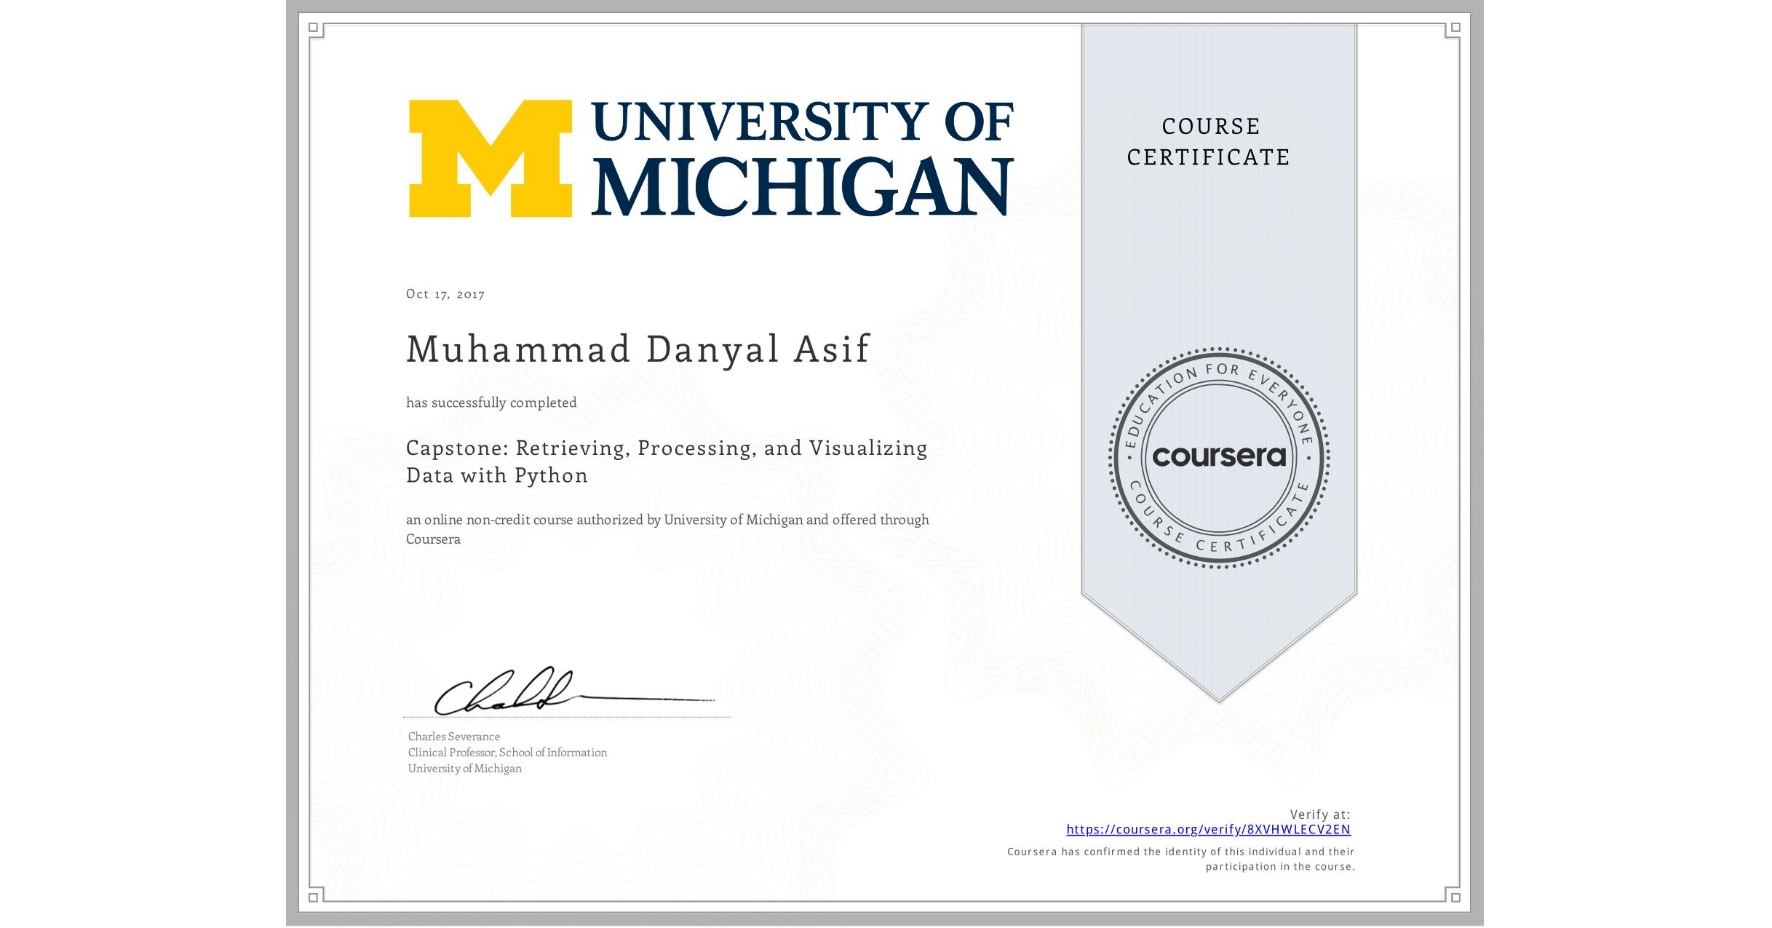 View certificate for Muhammad Danyal  Asif, Capstone: Retrieving, Processing, and Visualizing Data with Python, an online non-credit course authorized by University of Michigan and offered through Coursera